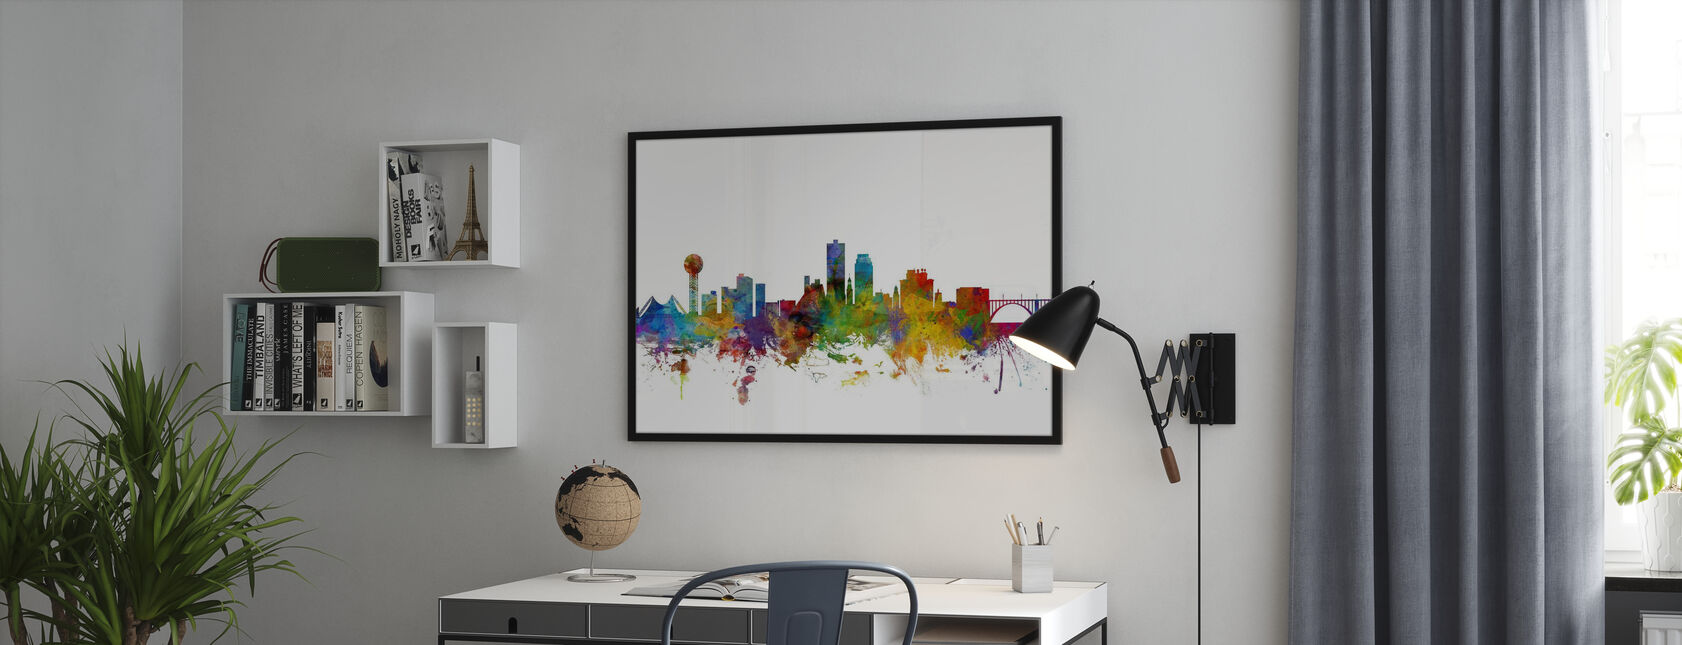 Skyline von Knoxville Tennessee - Poster - Büro